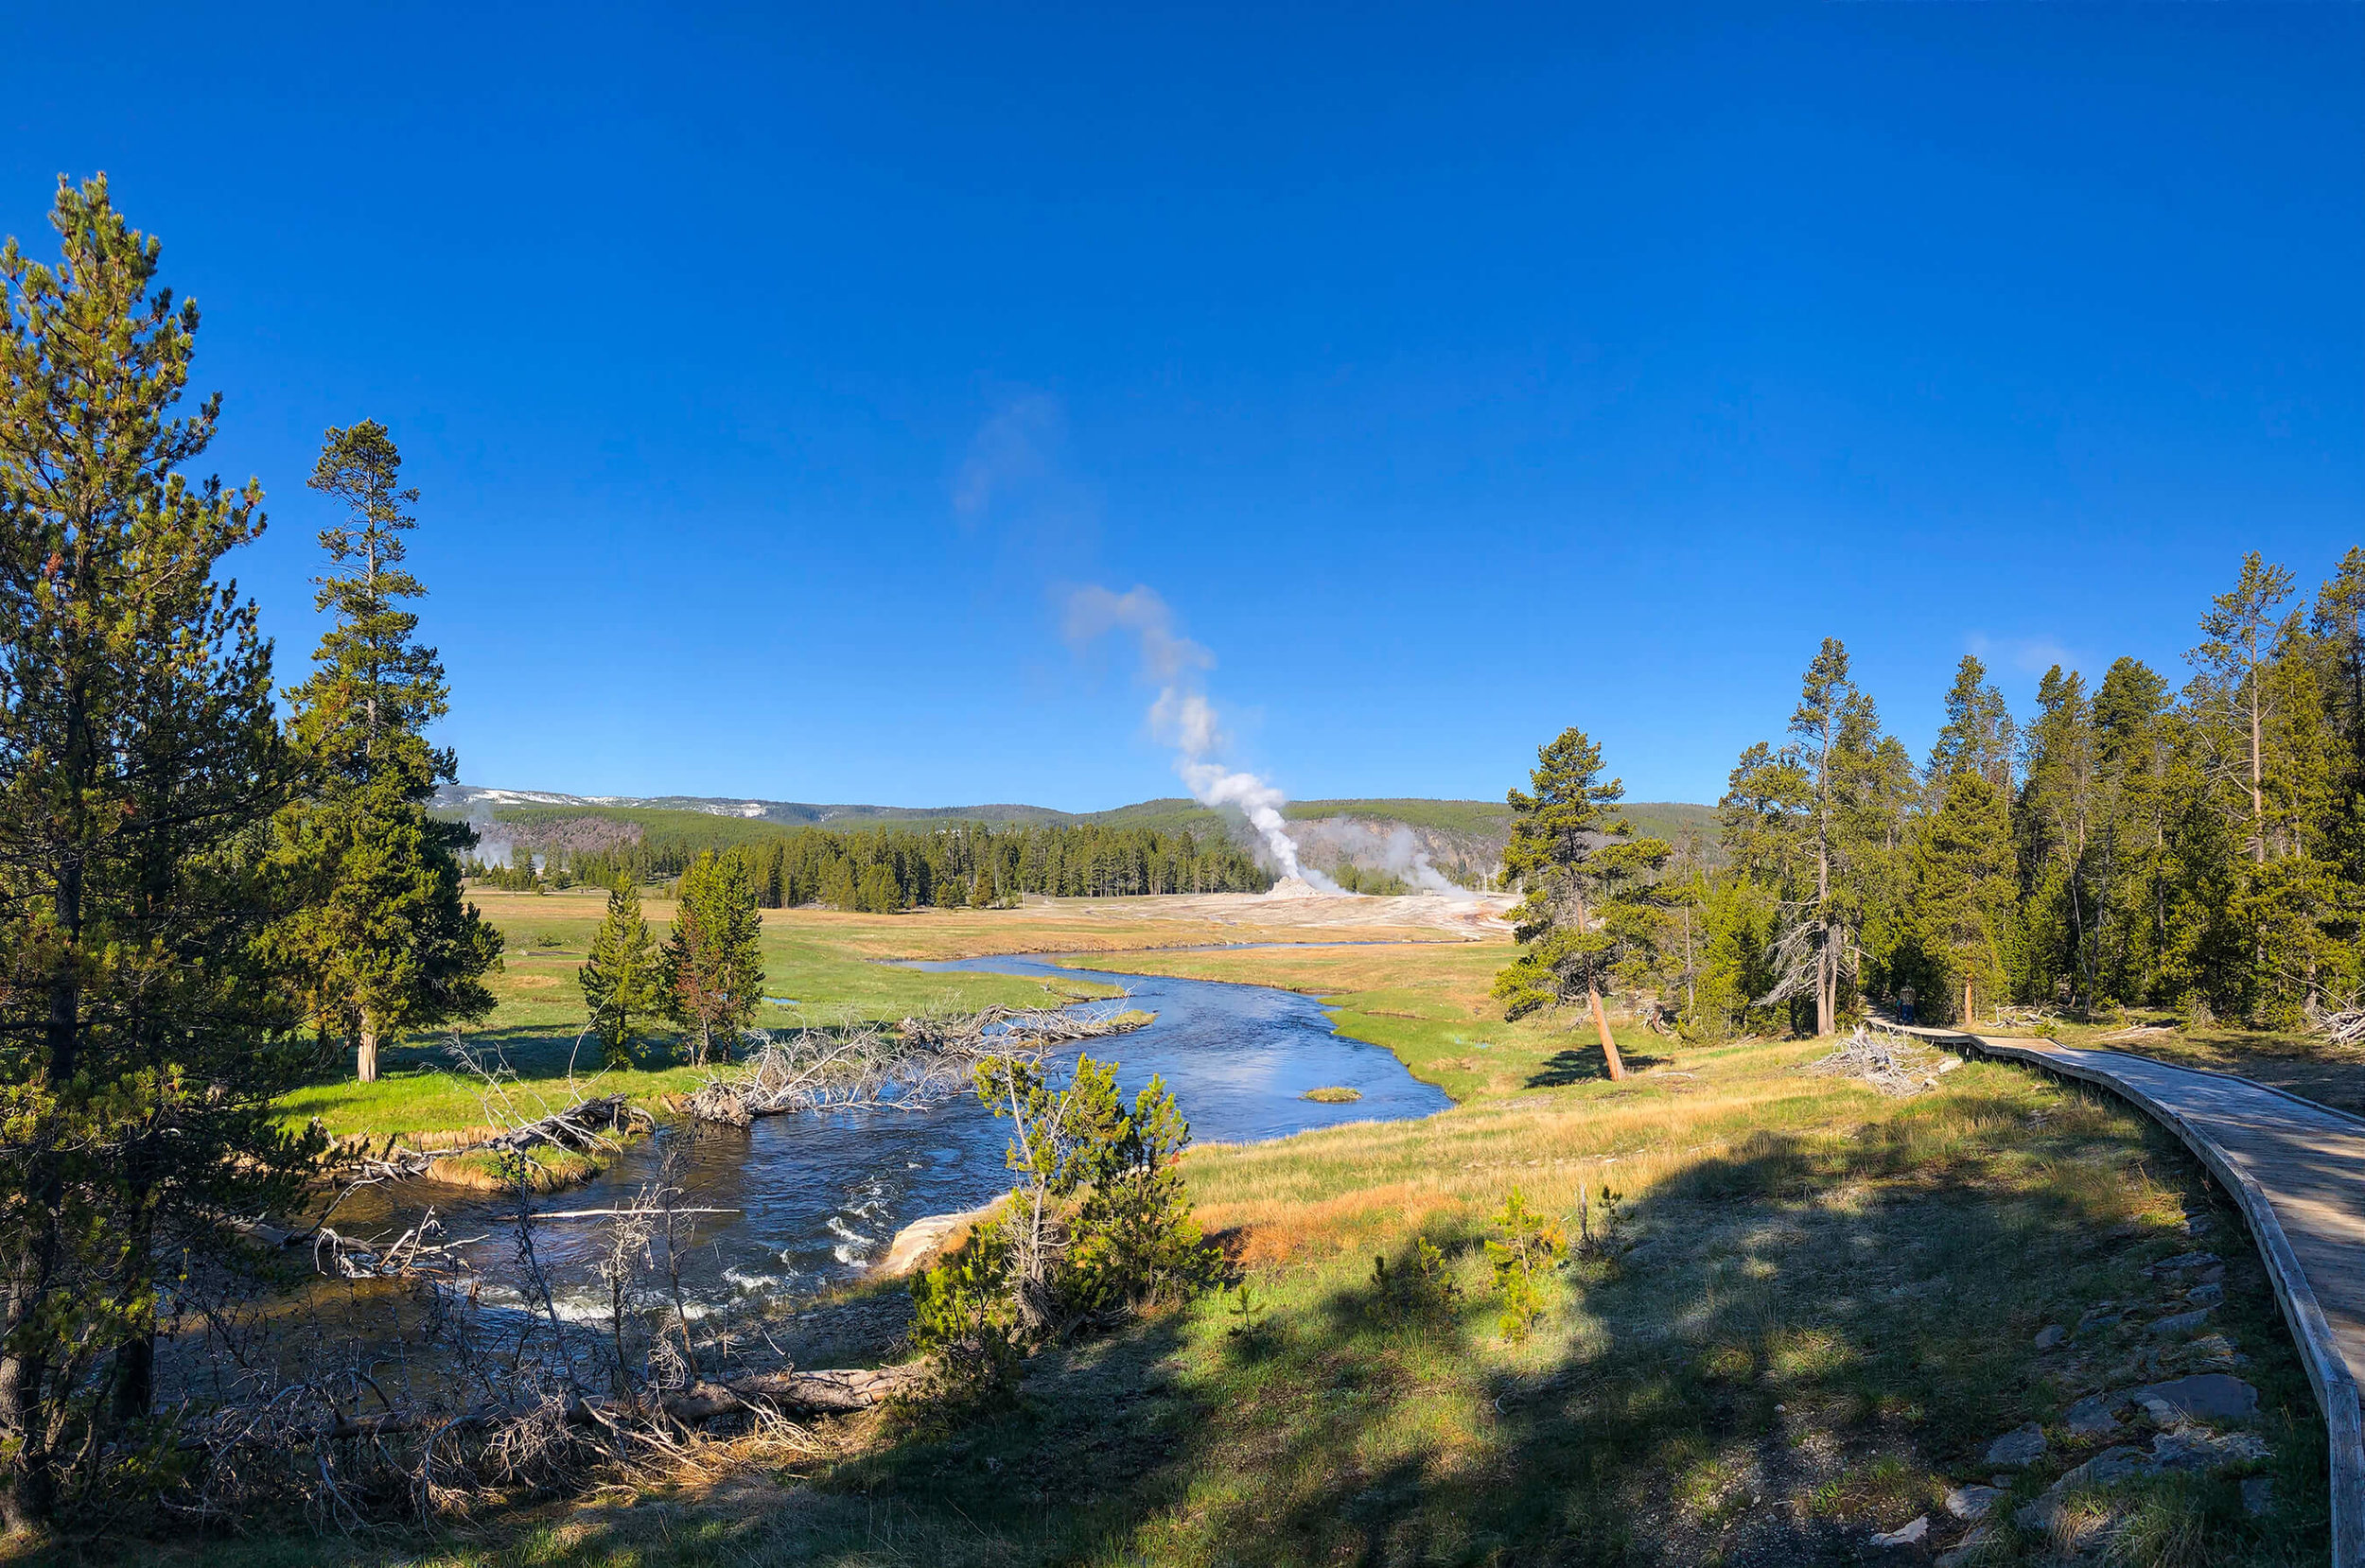 Firehole River with geysers